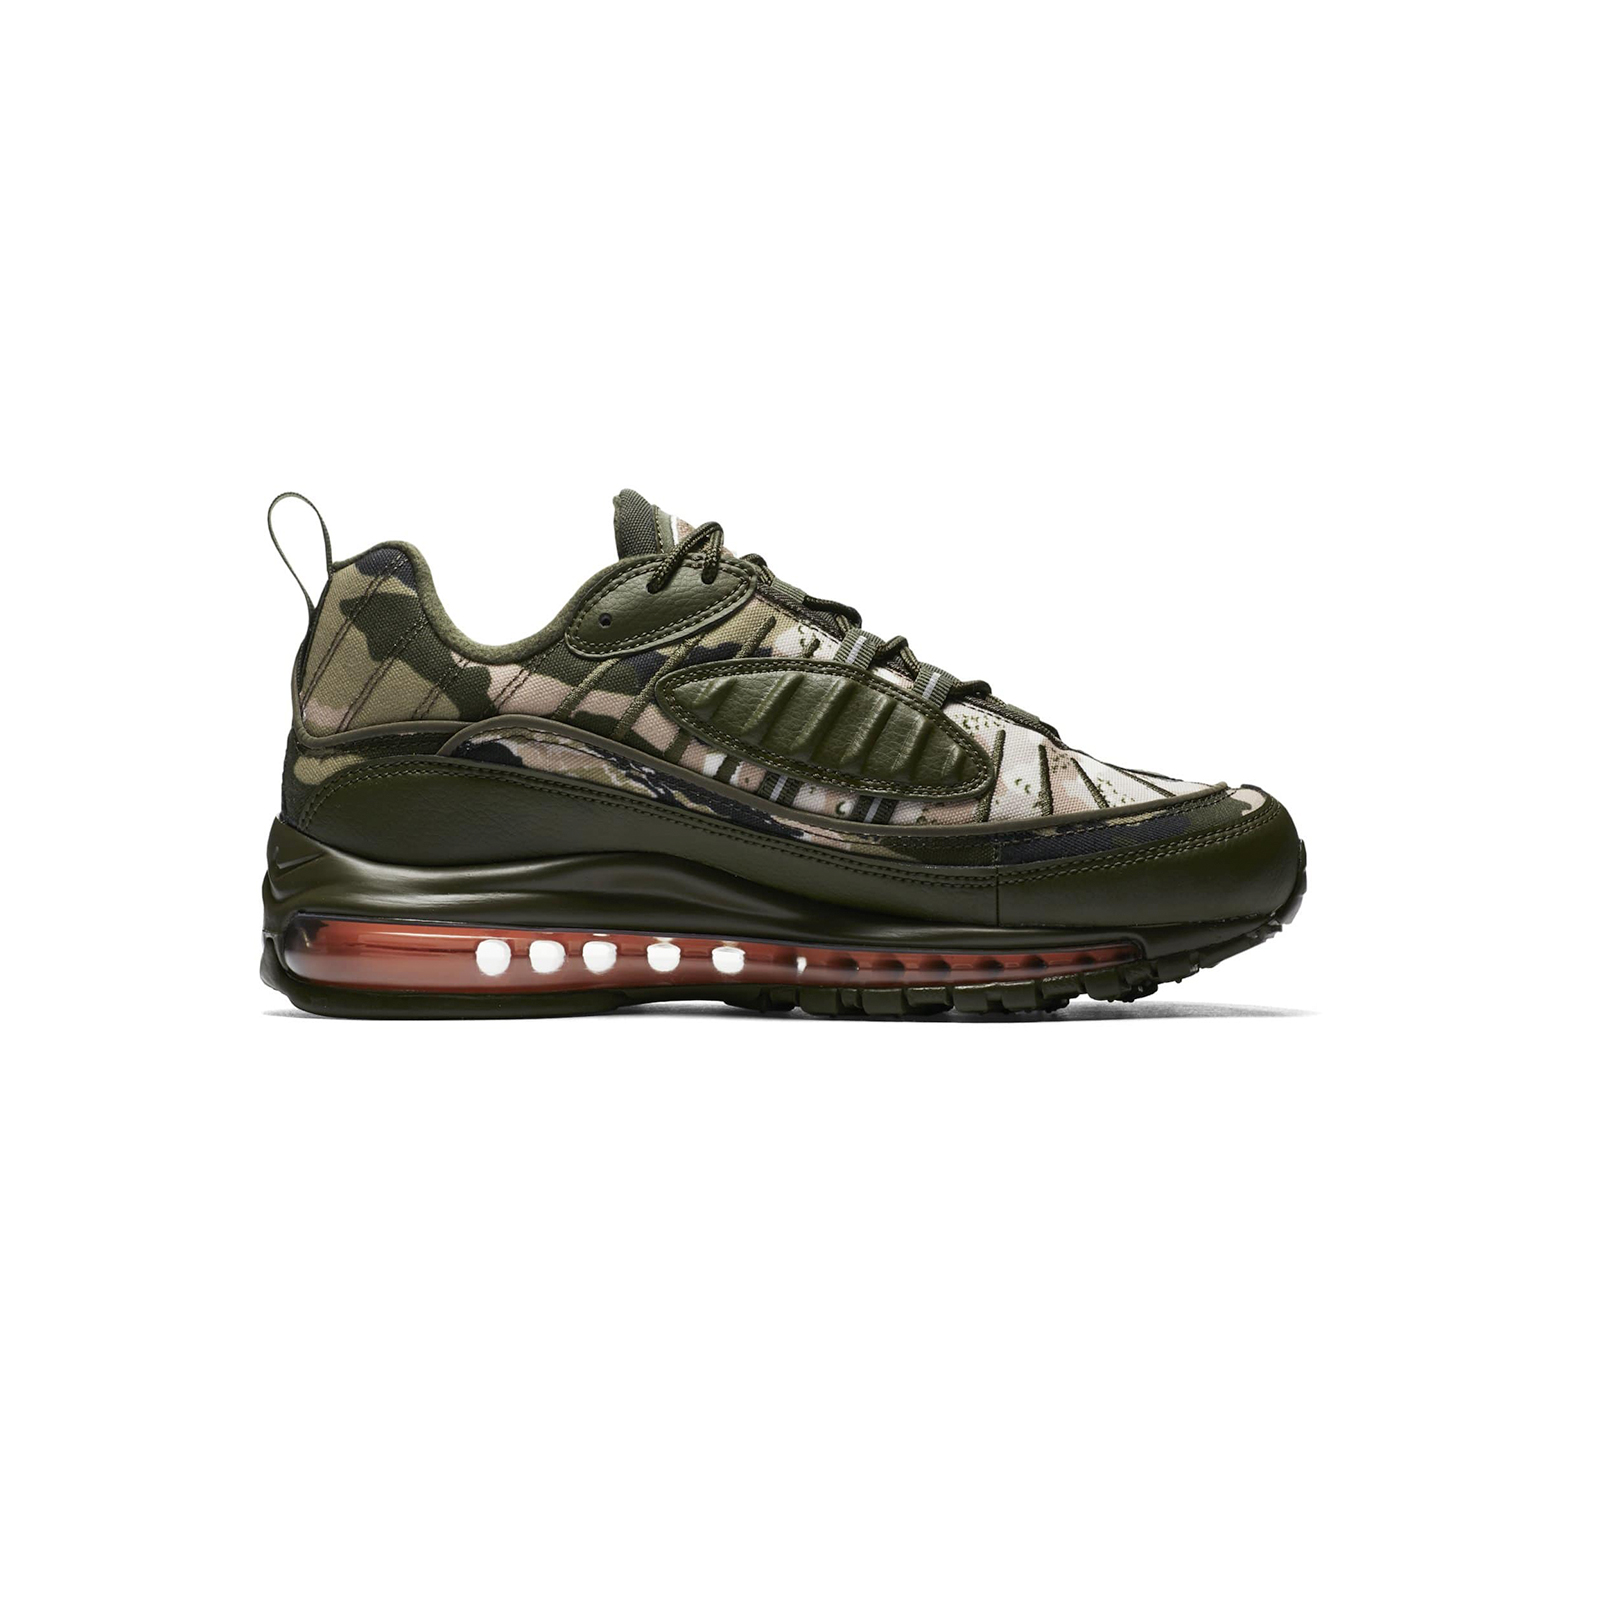 official photos 00993 64686 Nike Sportswear Air Max 98 Camo - 4. Close